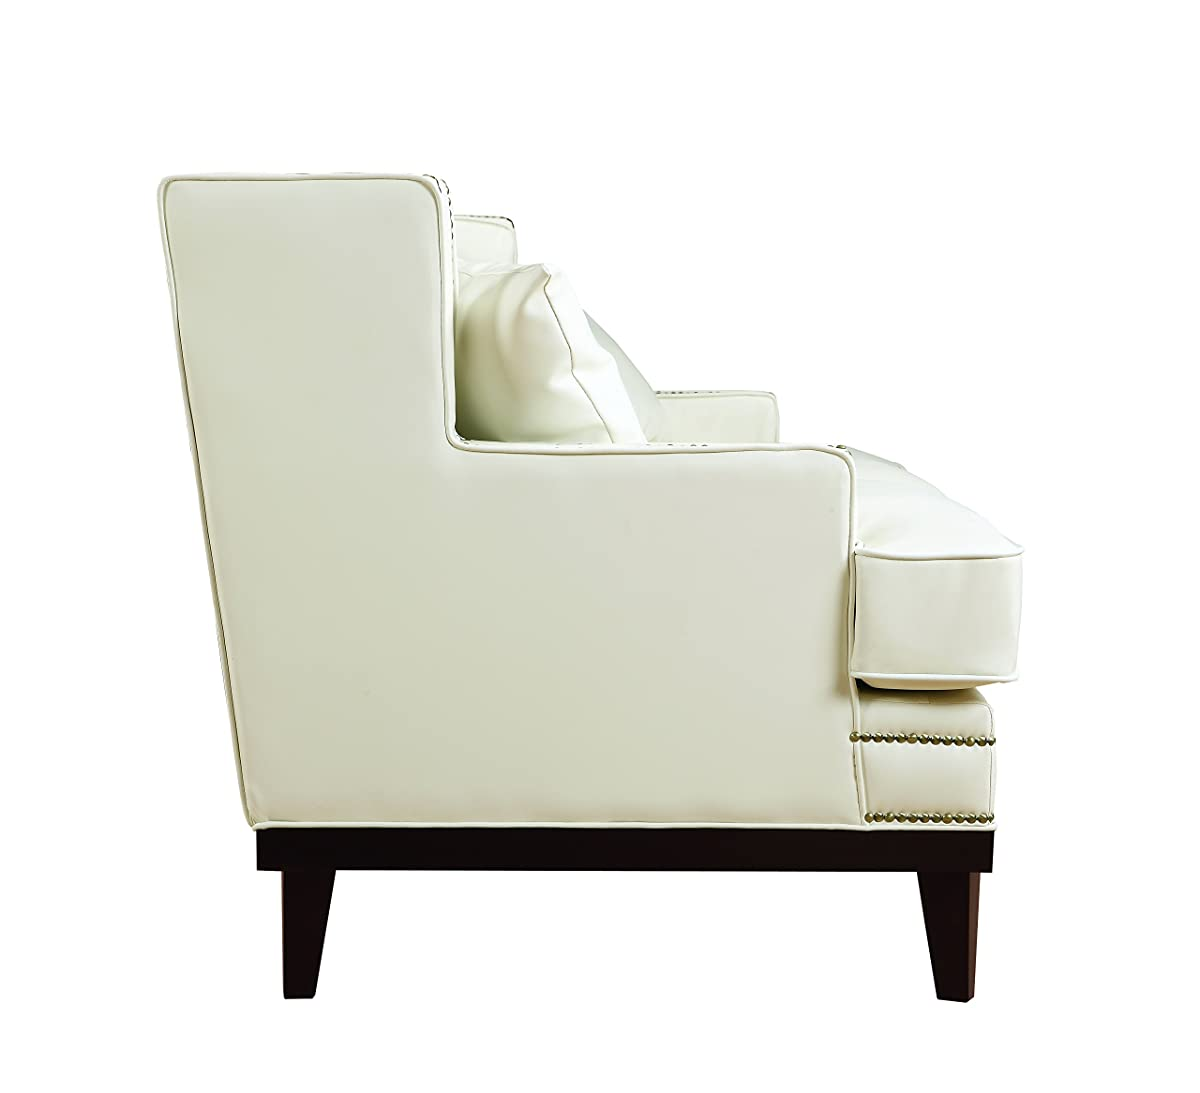 Modern Bonded Leather Sofa With Nailhead Trim Detail White